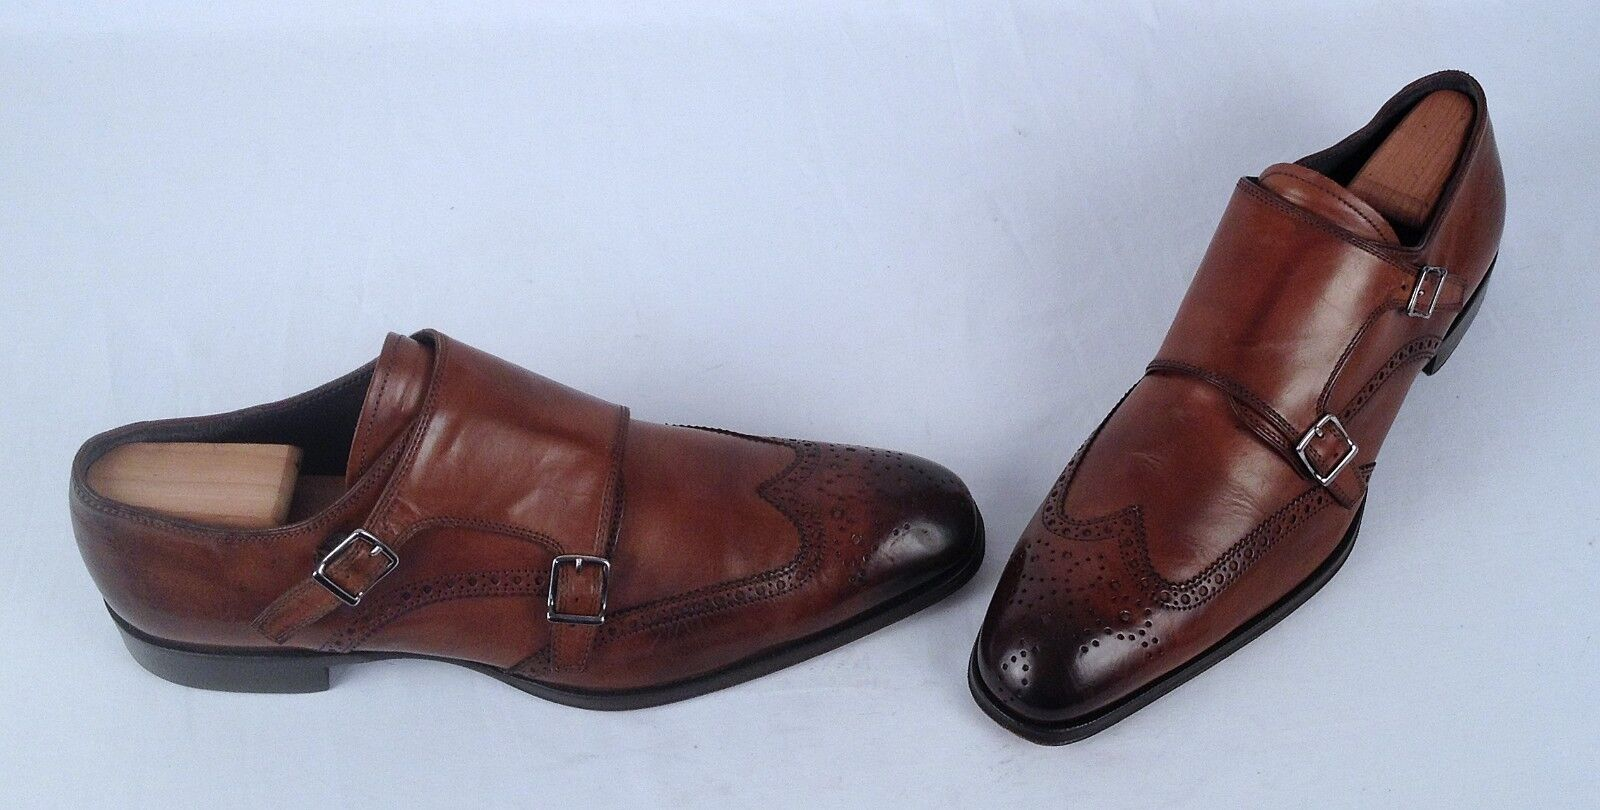 To Boot New York Astor Wingtip Double Monk - Brown Size 13 M   450 (H7)